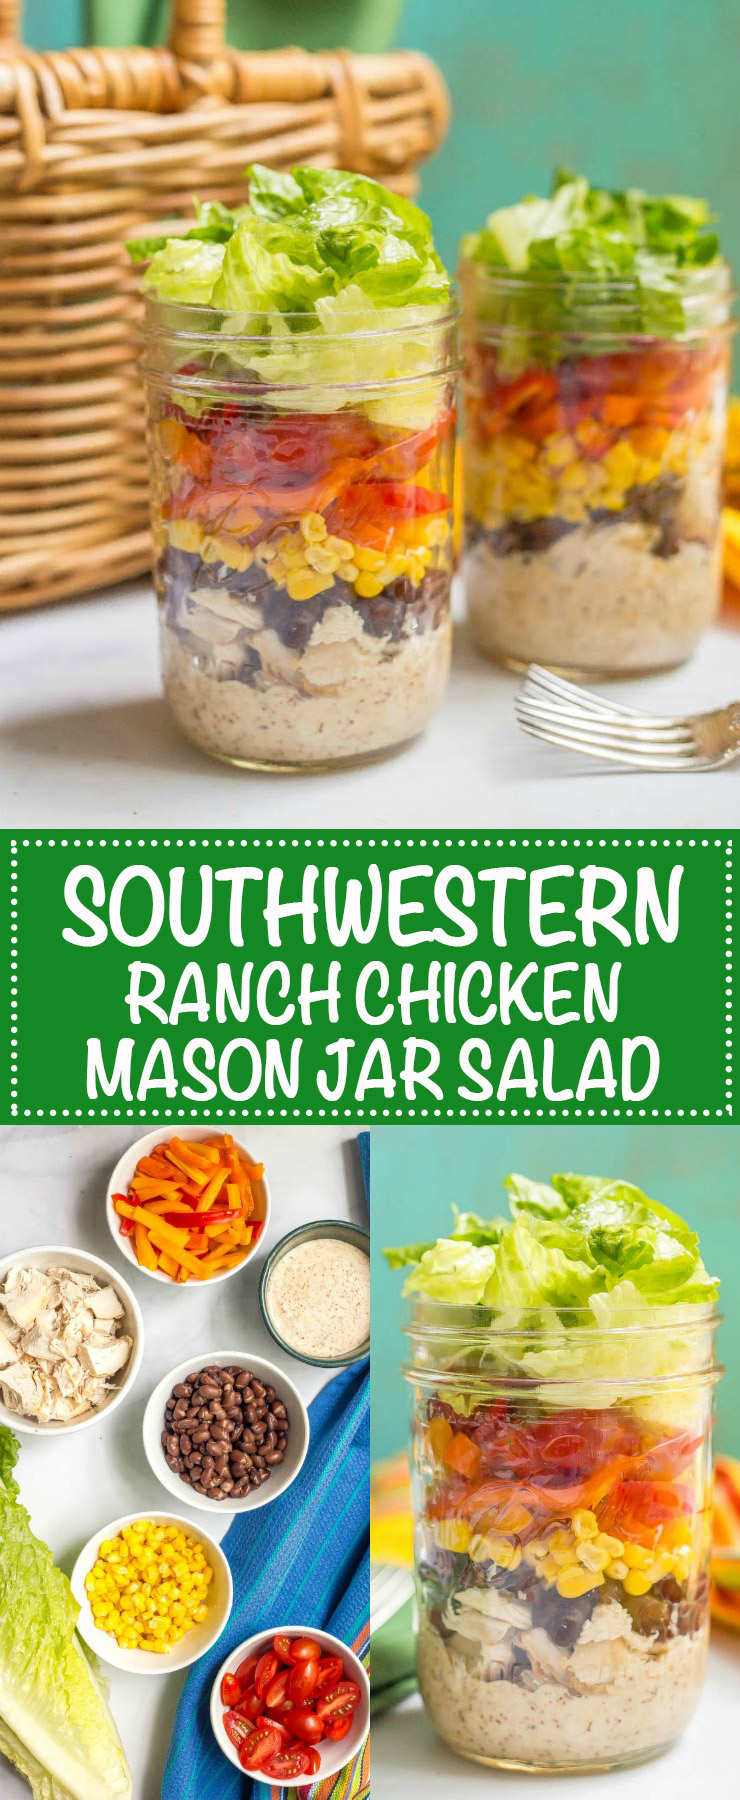 This layered southwestern mason jar salad with chicken, fresh veggies and Ranch dressing is a delicious make-ahead lunch! | www.familyfoodonthetable.com